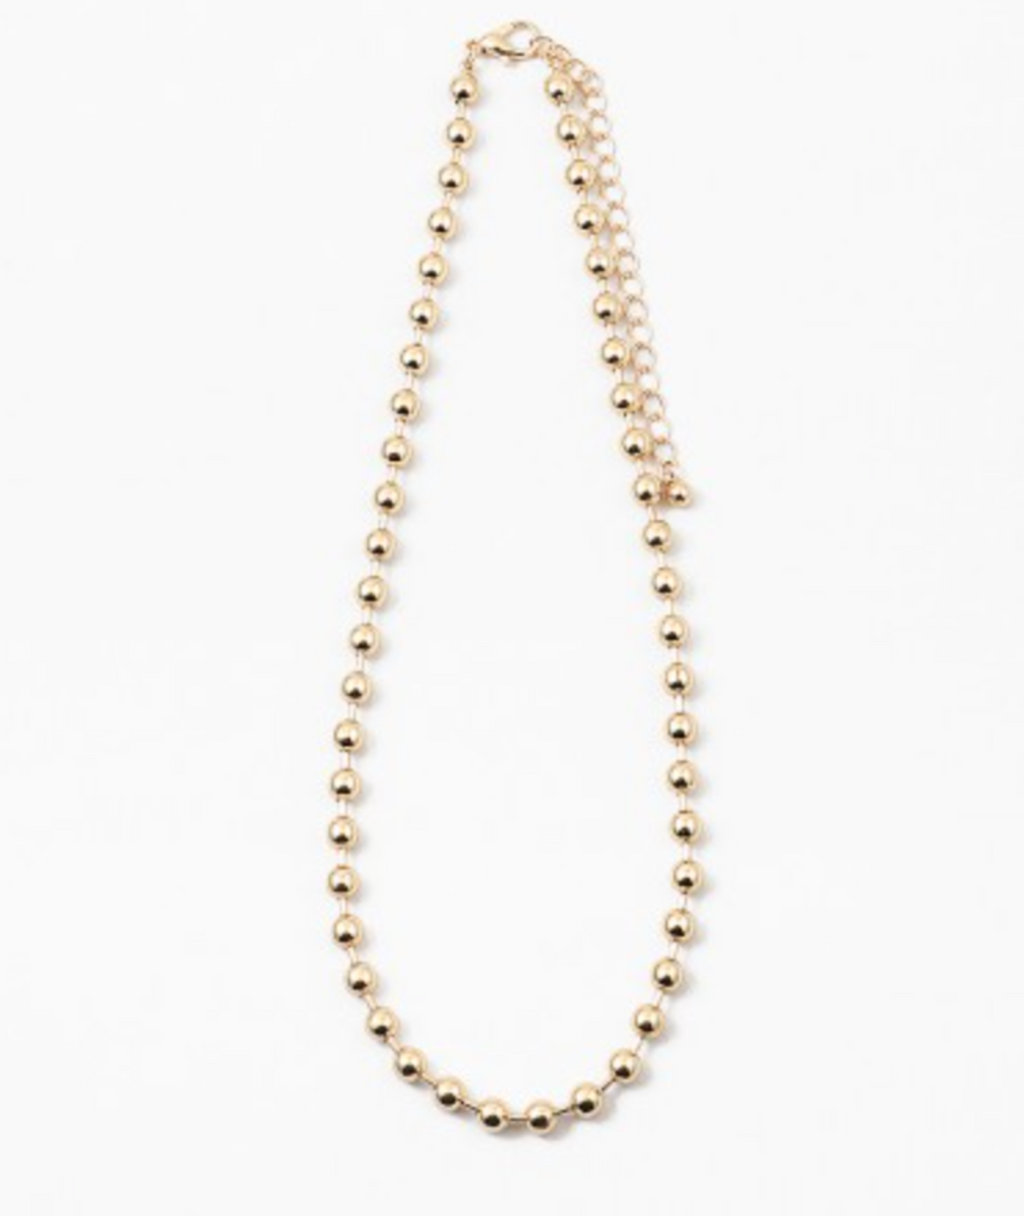 Fashionista J Gold Ball Necklace